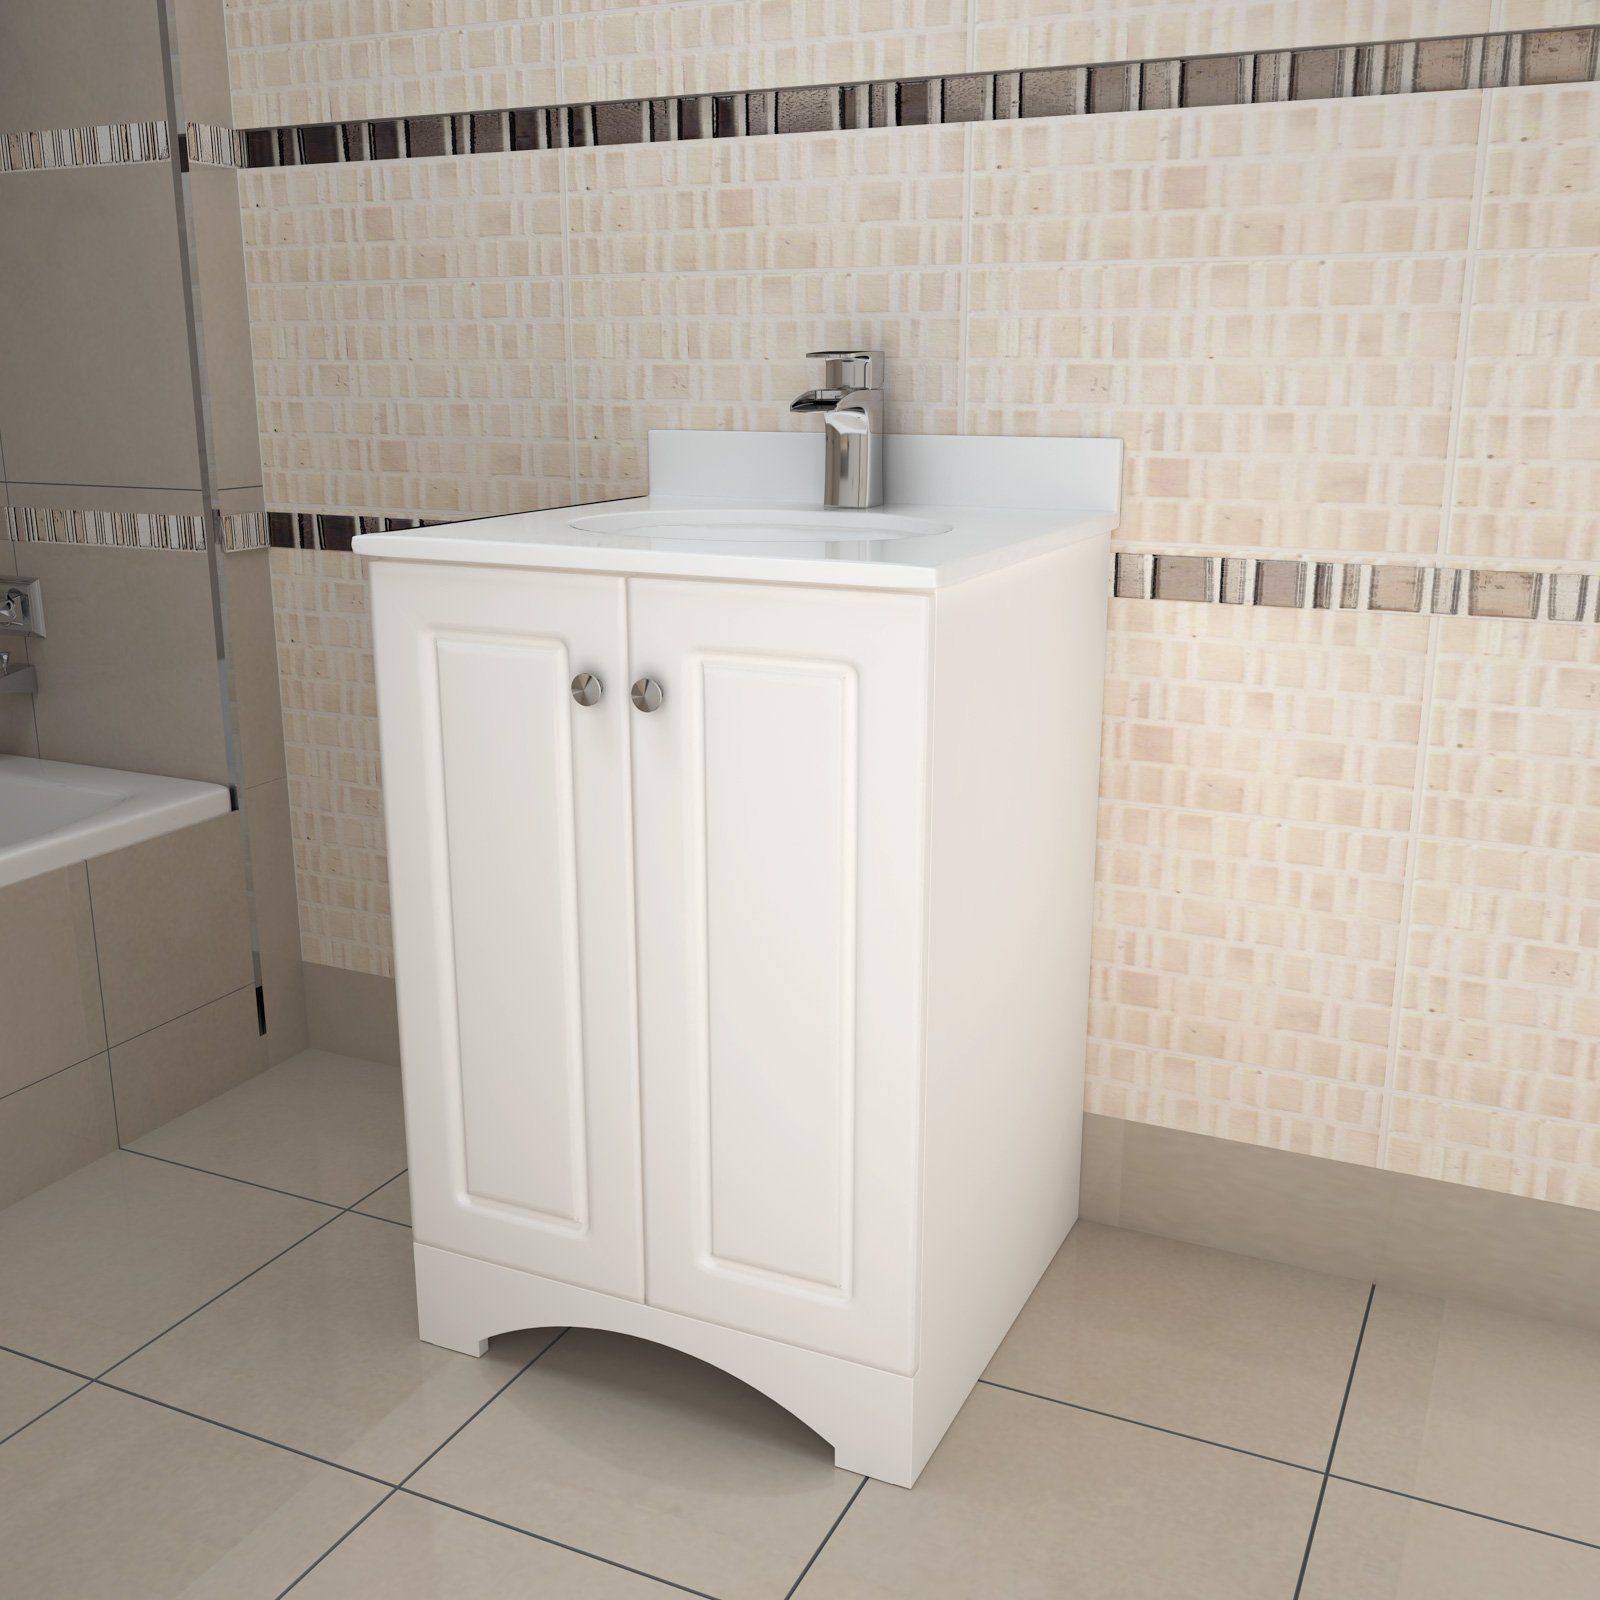 SUNNY SHOWER White Bathroom Vanity With Ceramic Basin And Marble Top VPW24  Local Pickup